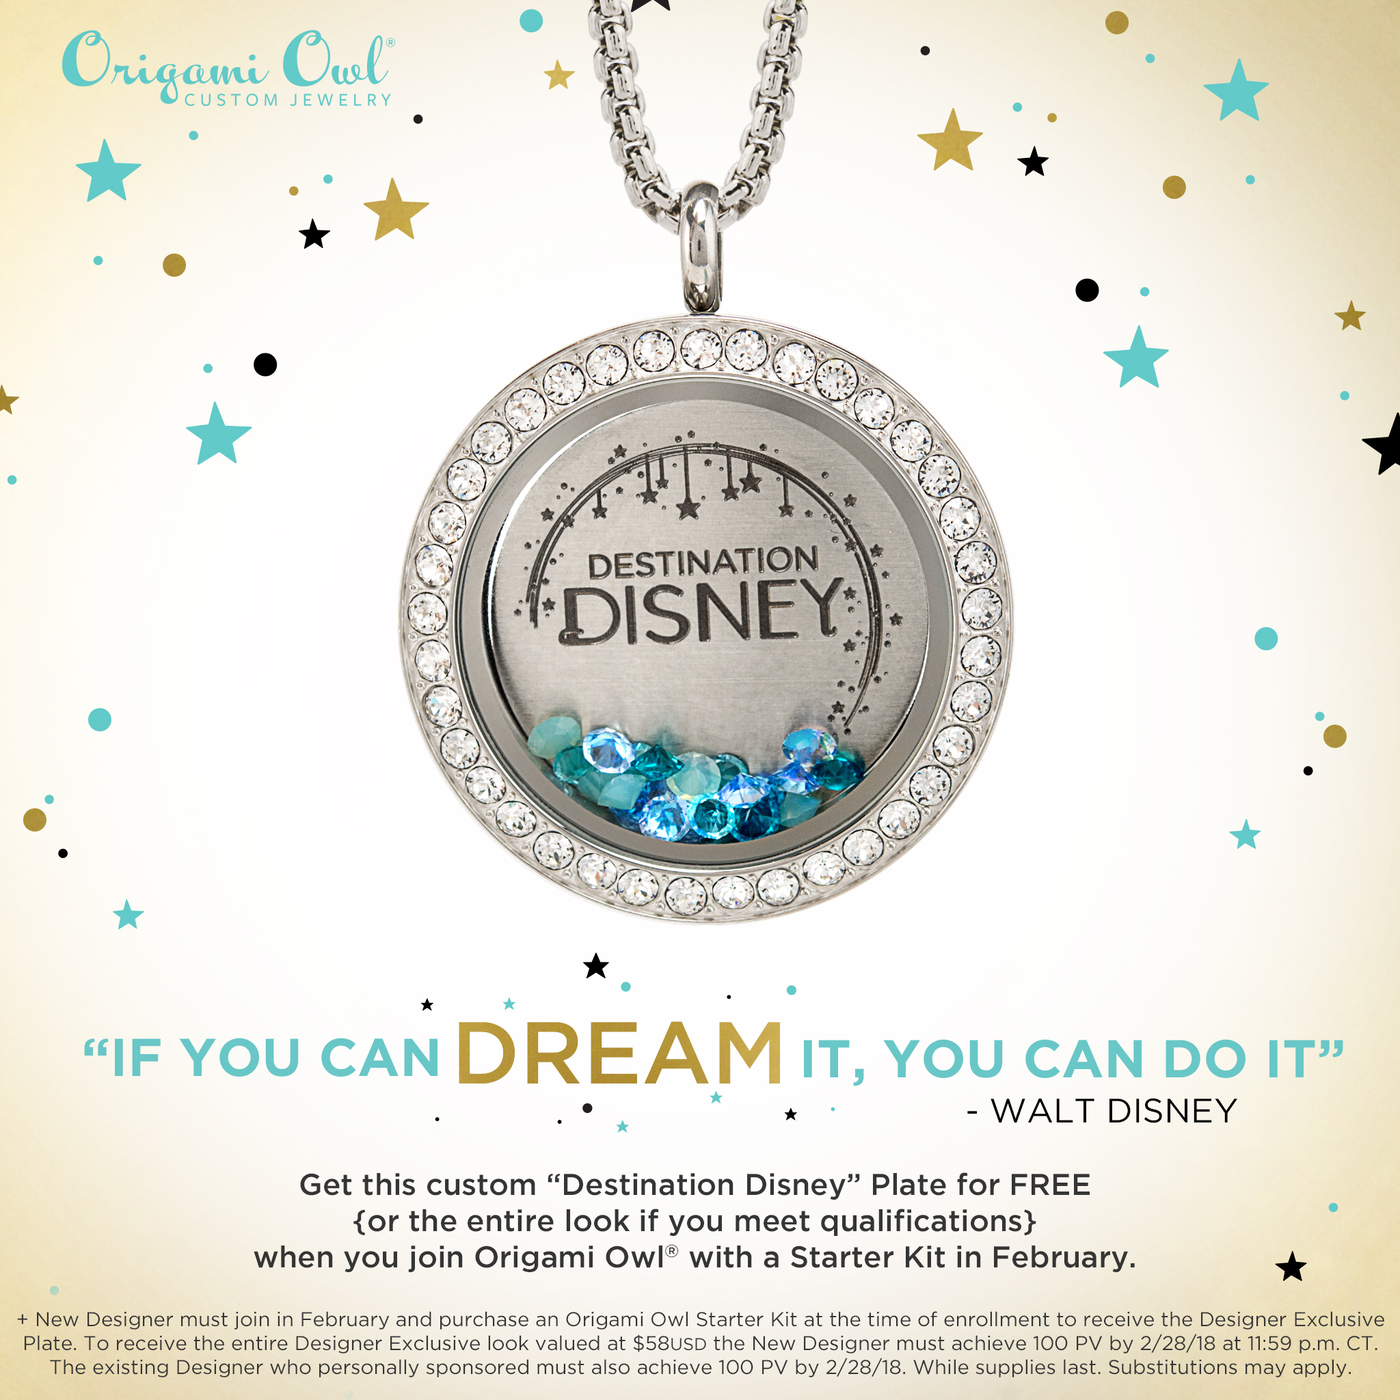 origami owl news smore newsletters for business